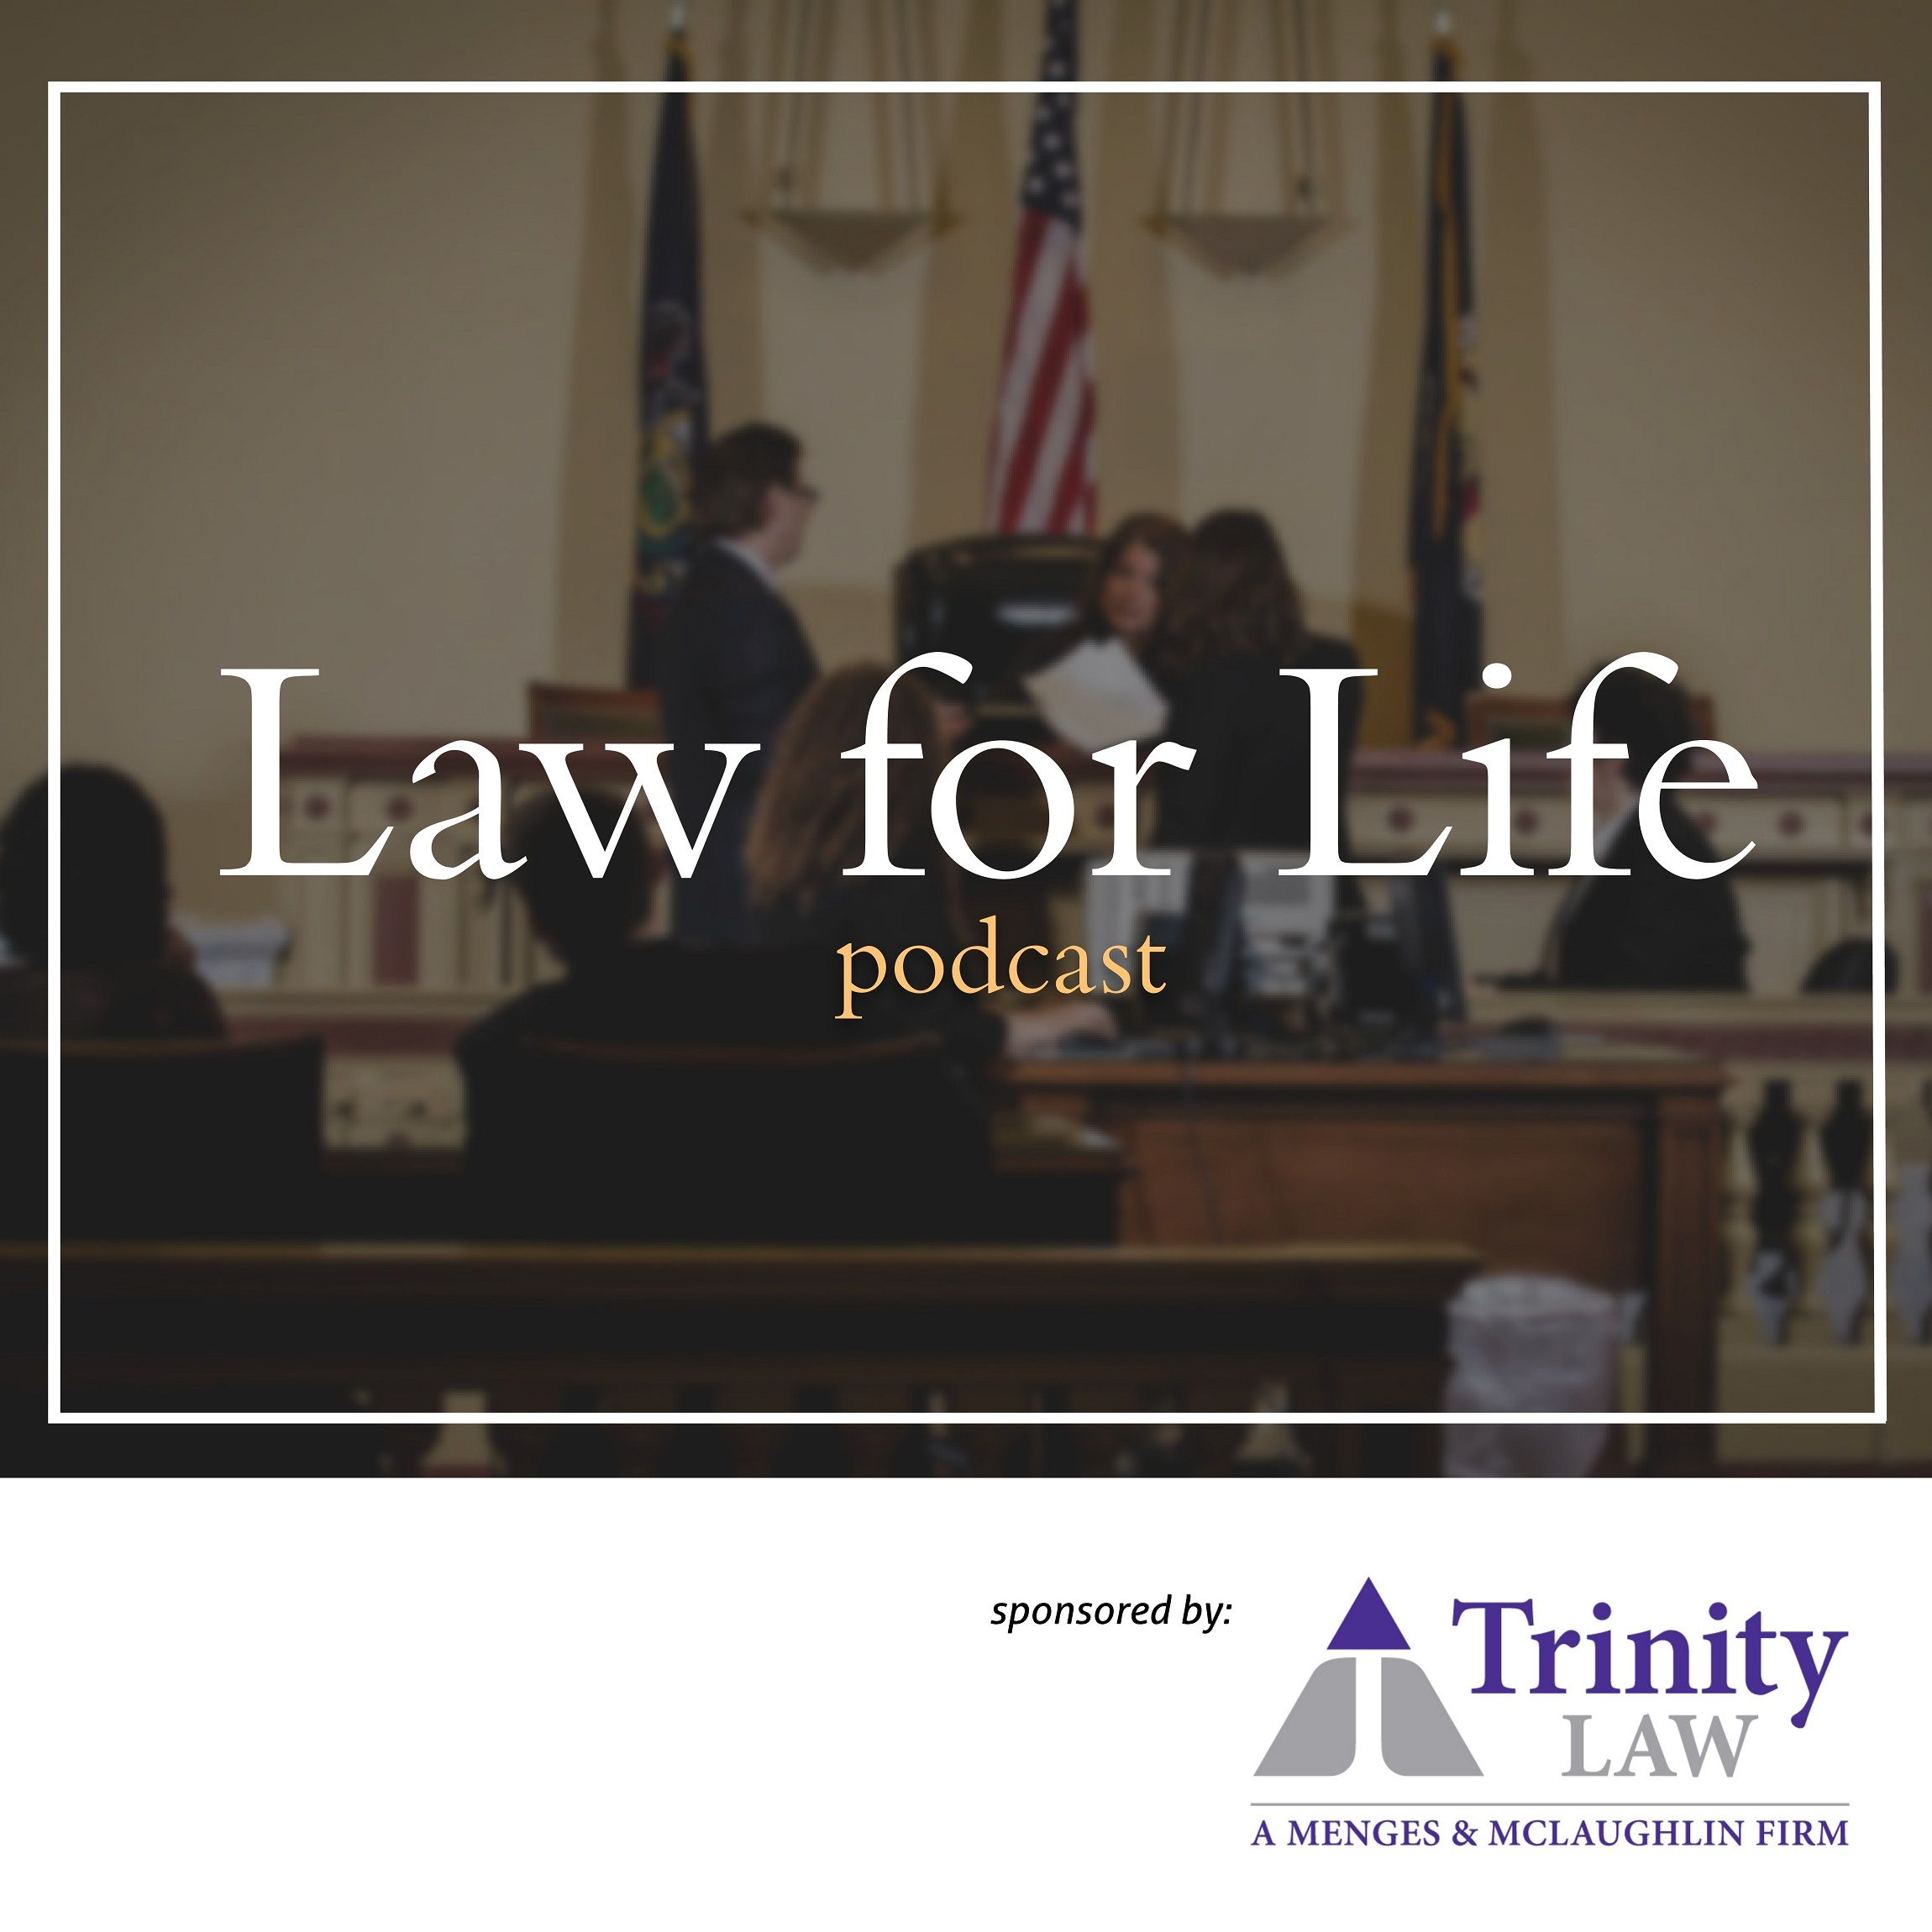 Law for Life - Trinity Law Podcast